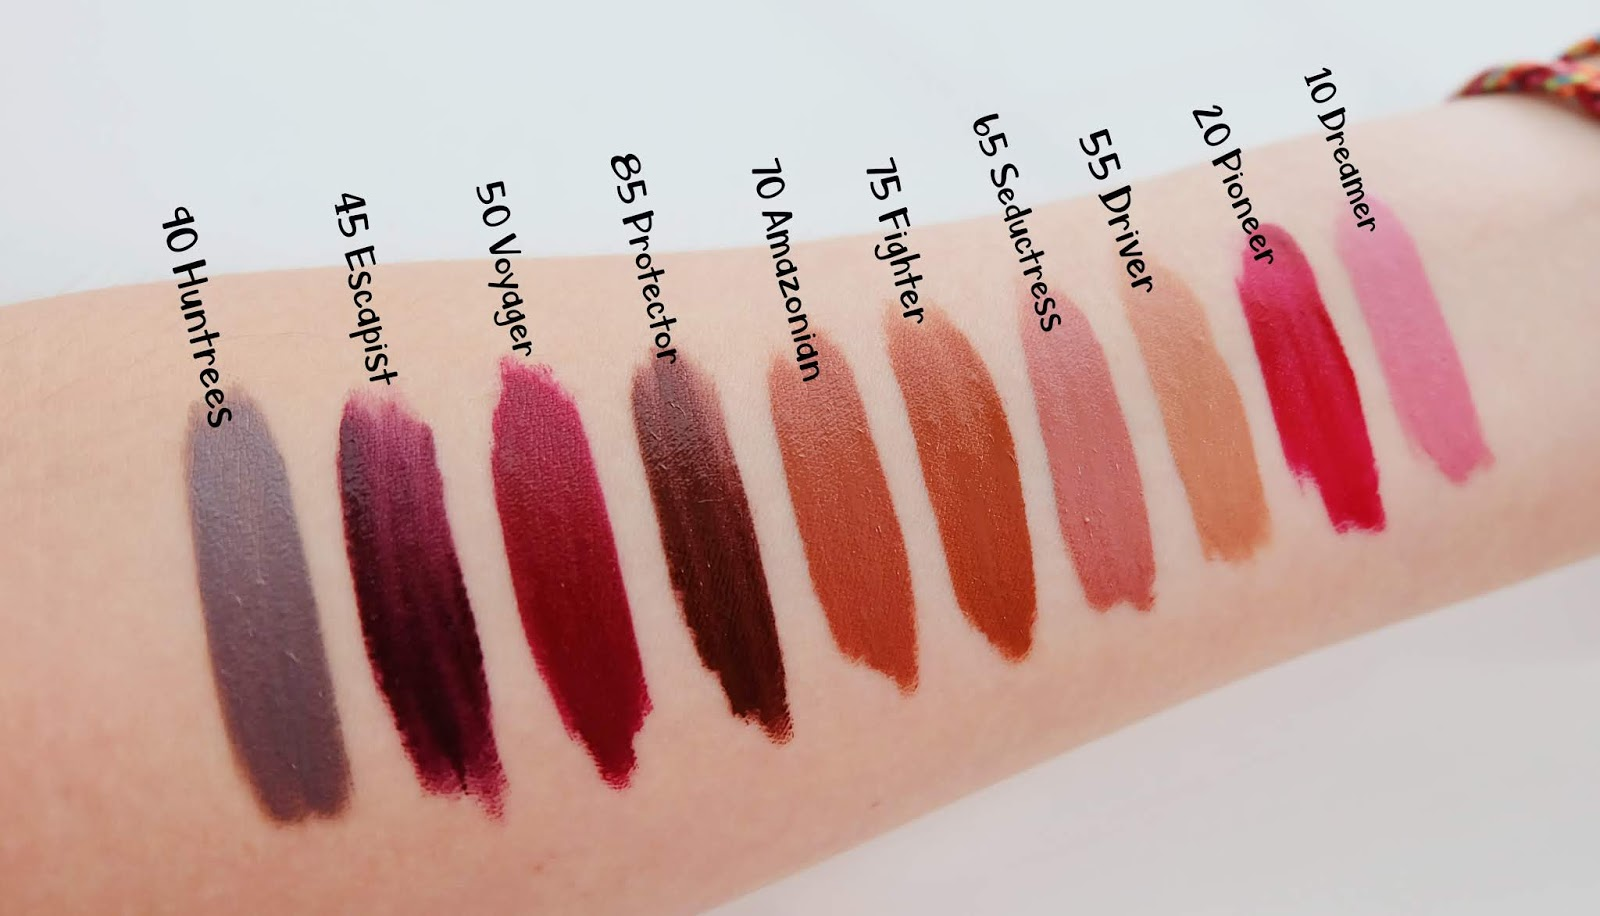 Maybelline Superstay Swatches | www.bigdreamerblog.com